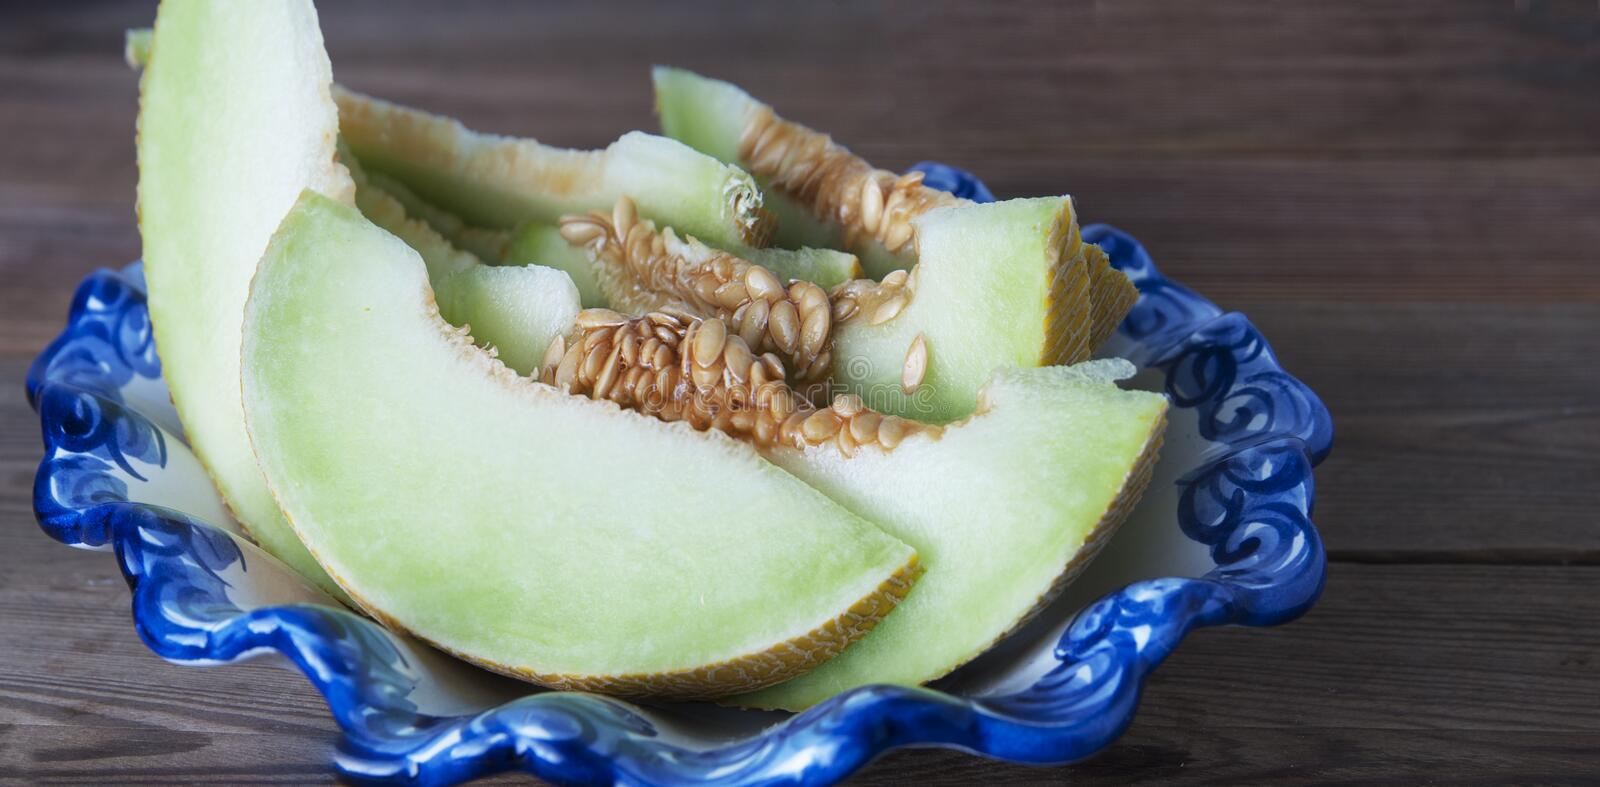 Cantaloupe yellow fresh melon isolated with sliced melon, in beautiful vintage blue plate, wooden table, gray background. Summer f stock photo